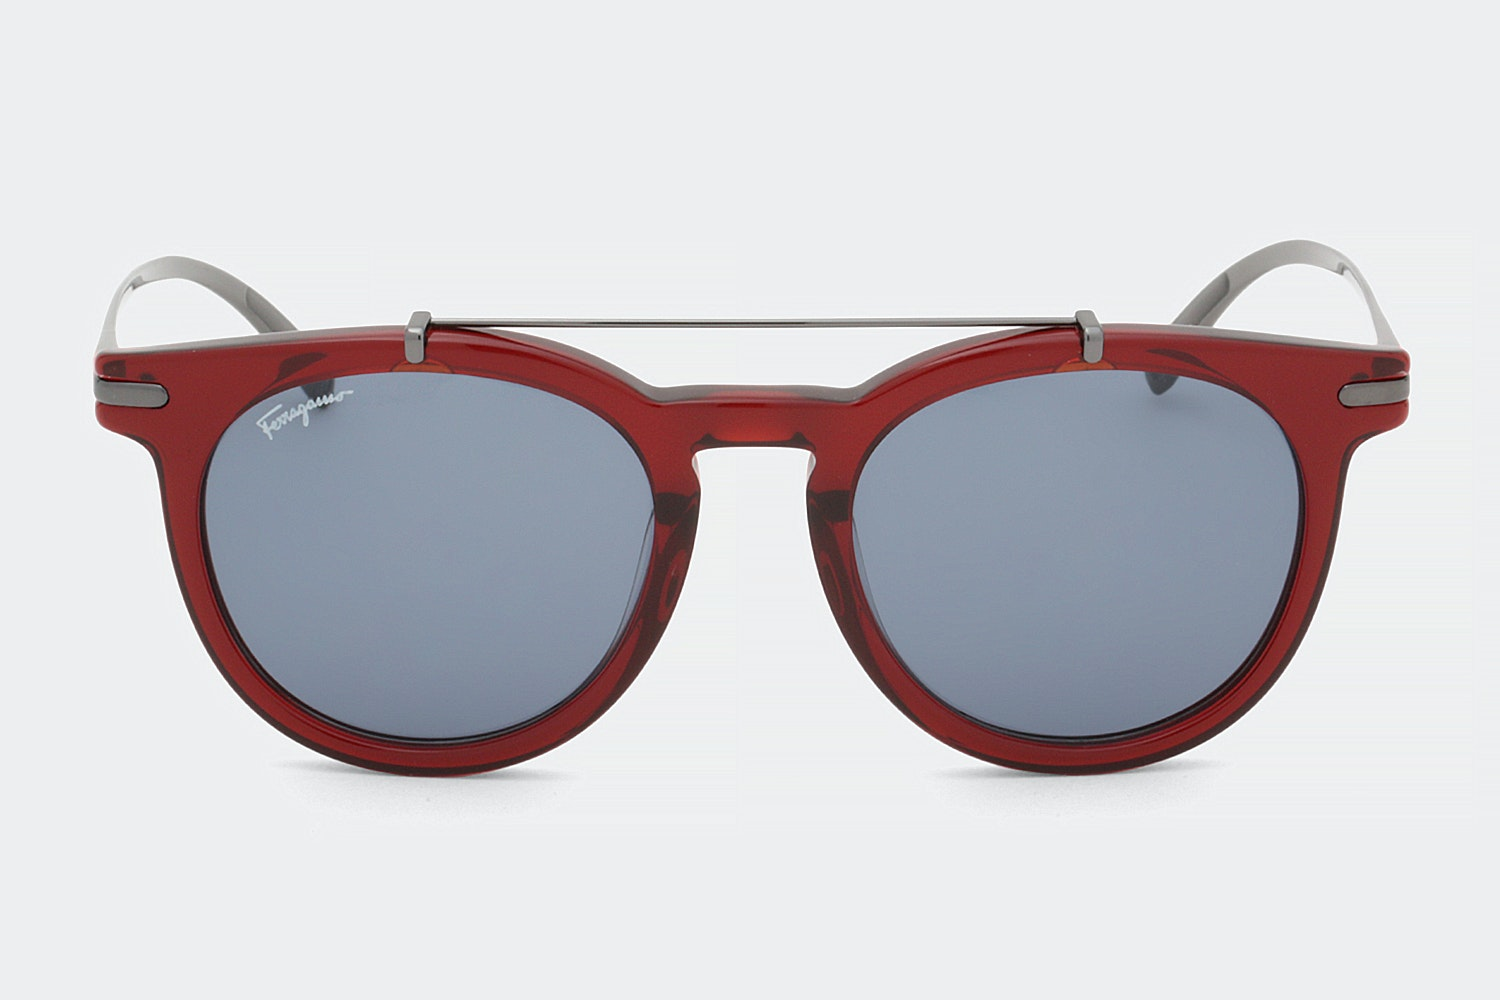 Salvatore Ferragamo SF821S Sunglasses